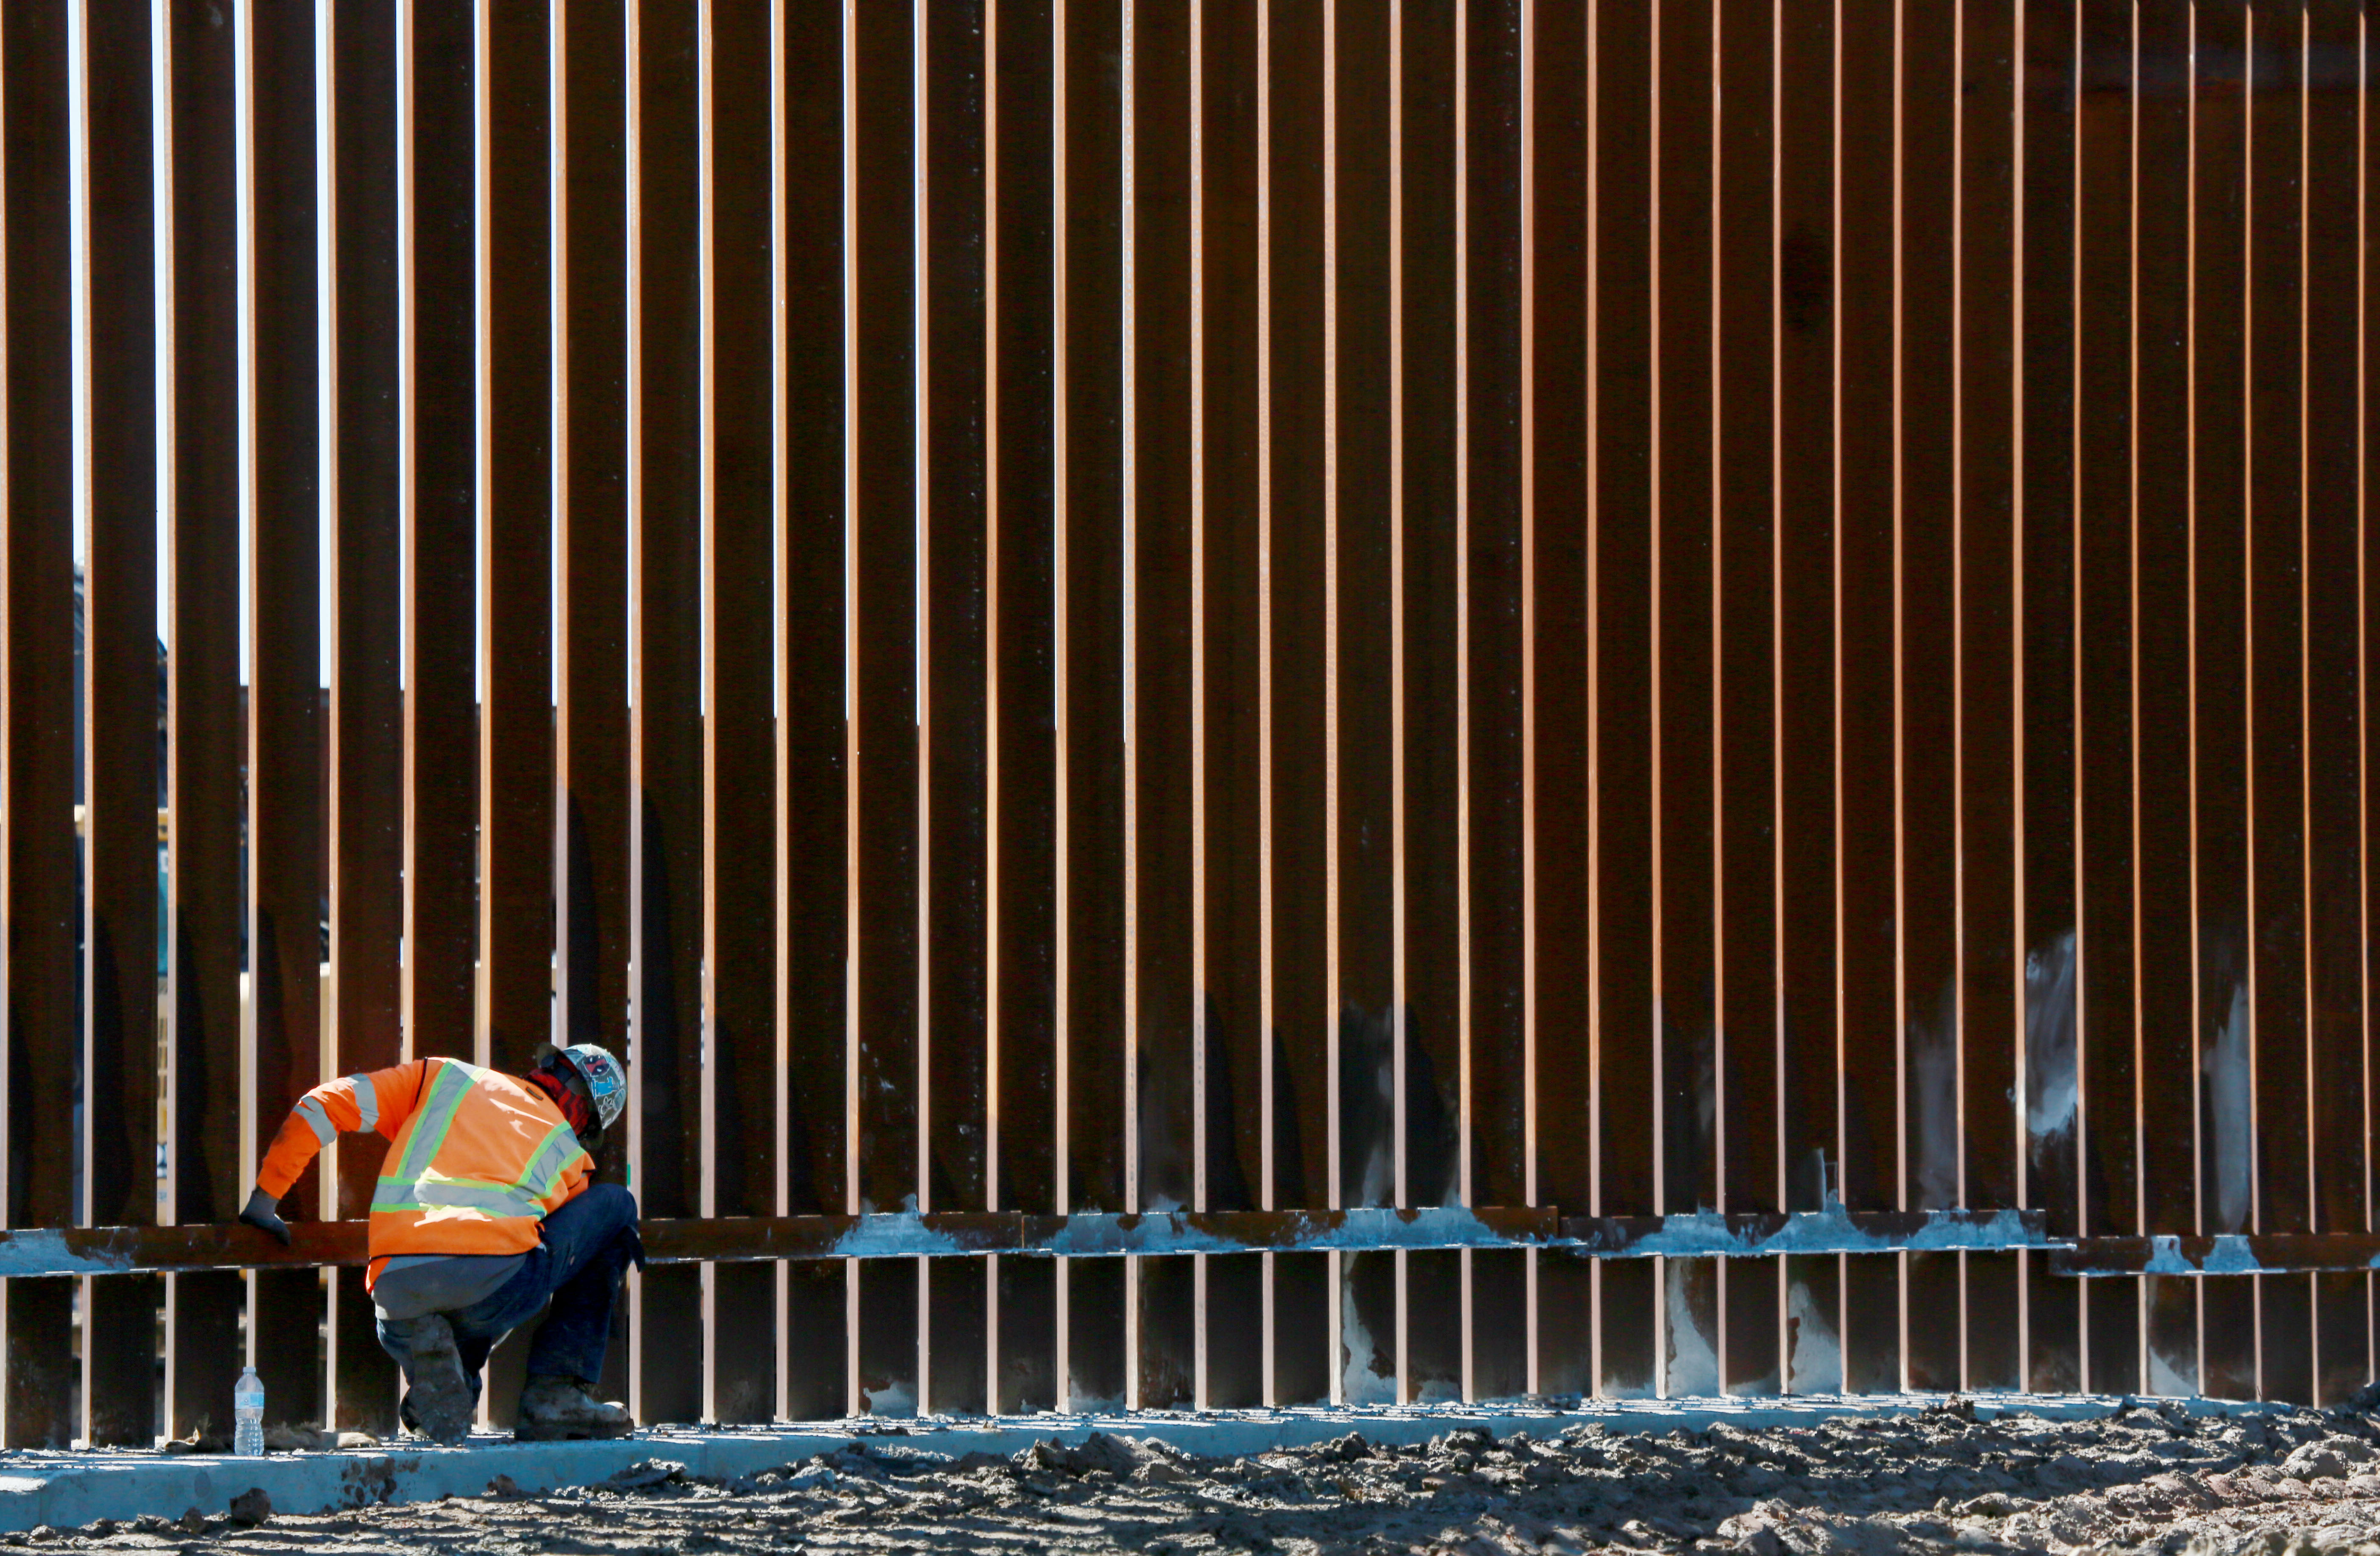 OTAY MESA, CA - FEBRUARY 22: A construction worker builds a secondary border wall on February 22, 2019 in Otay Mesa, California. The Department of Homeland Security is building 12.5 miles of secondary border wall as part of Presient Donald Trump's Border Security and Immigration Enforcement Improvements Executive Order to build new fencing along the Southern Border. (Photo by Sandy Huffaker/Getty Images)